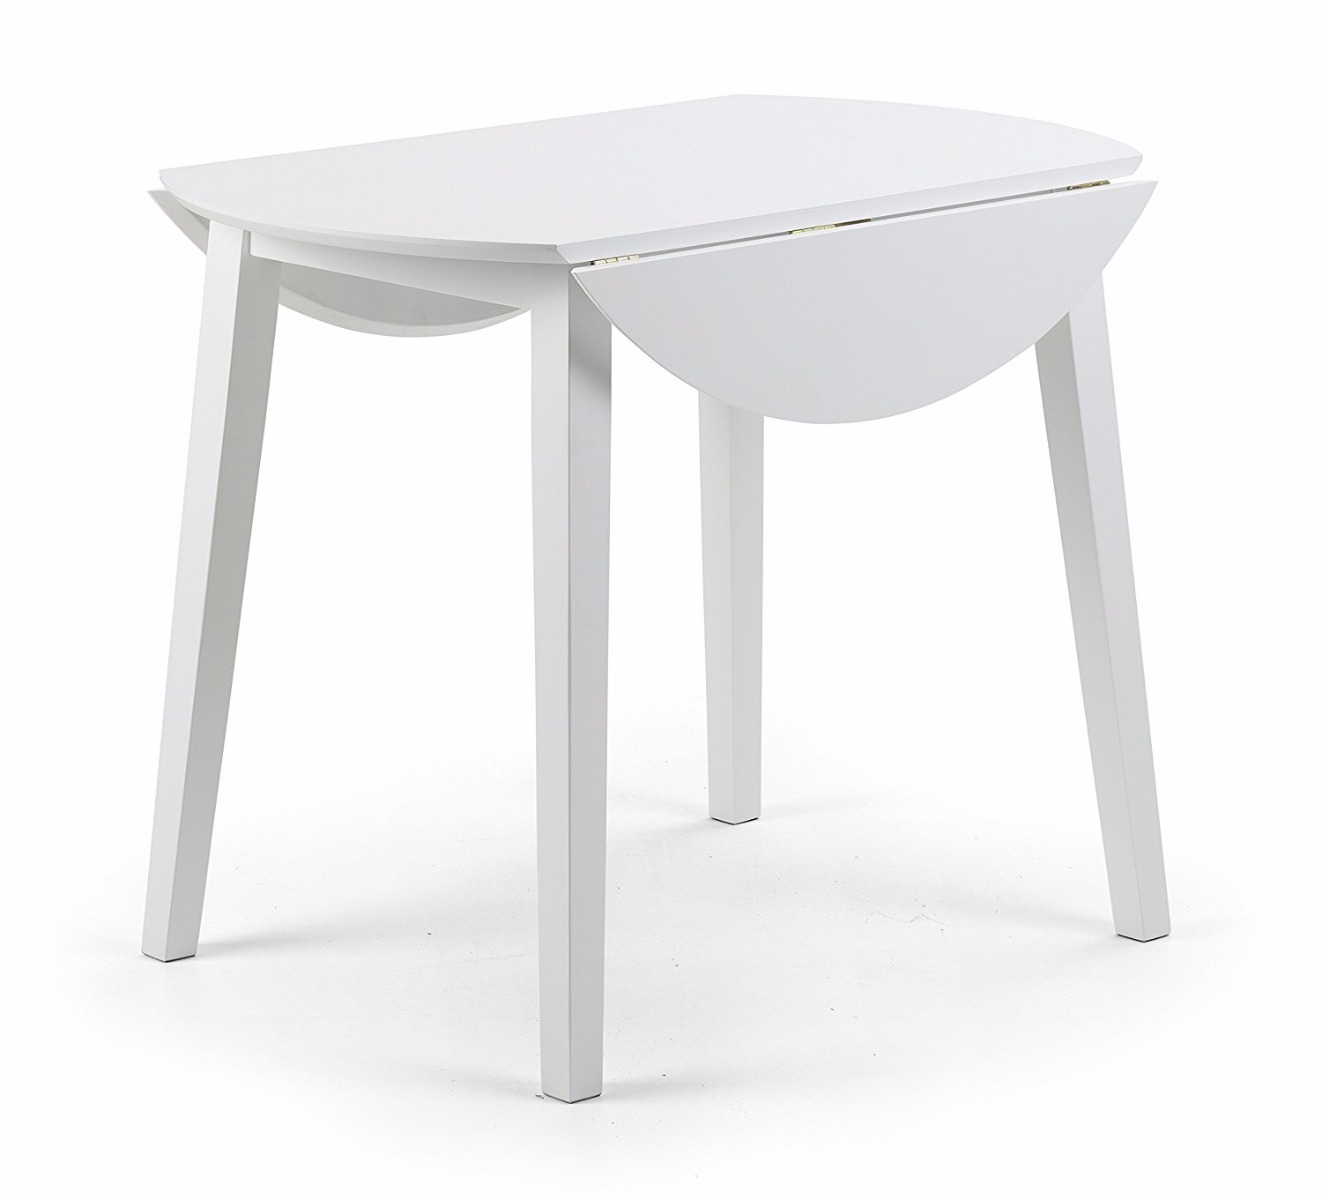 https://www.firstfurniture.co.uk/pub/media/catalog/product/c/o/coa001.jpg